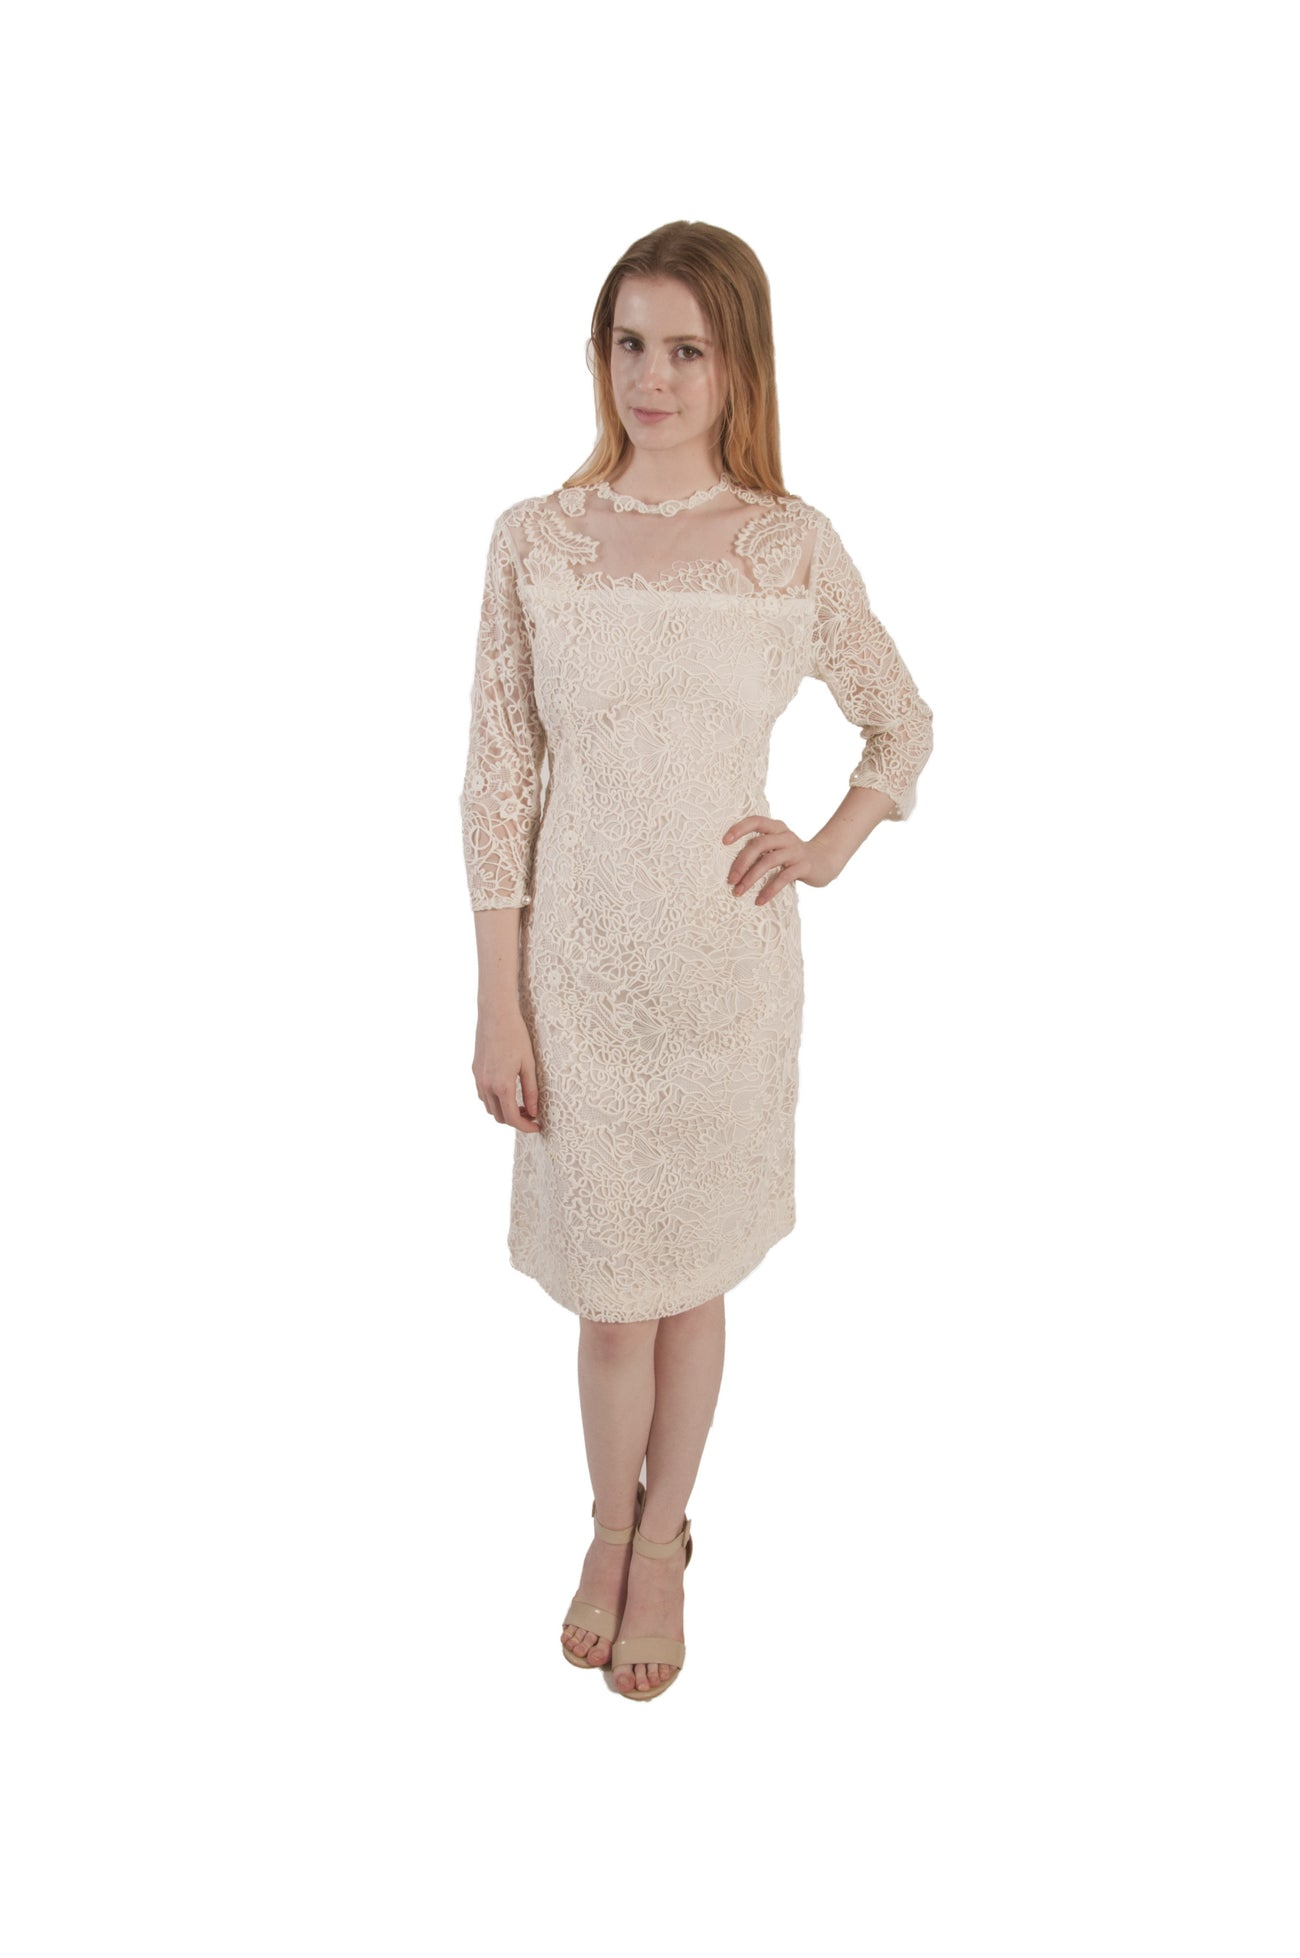 Cream Lace & Crepe Cocktail Dress